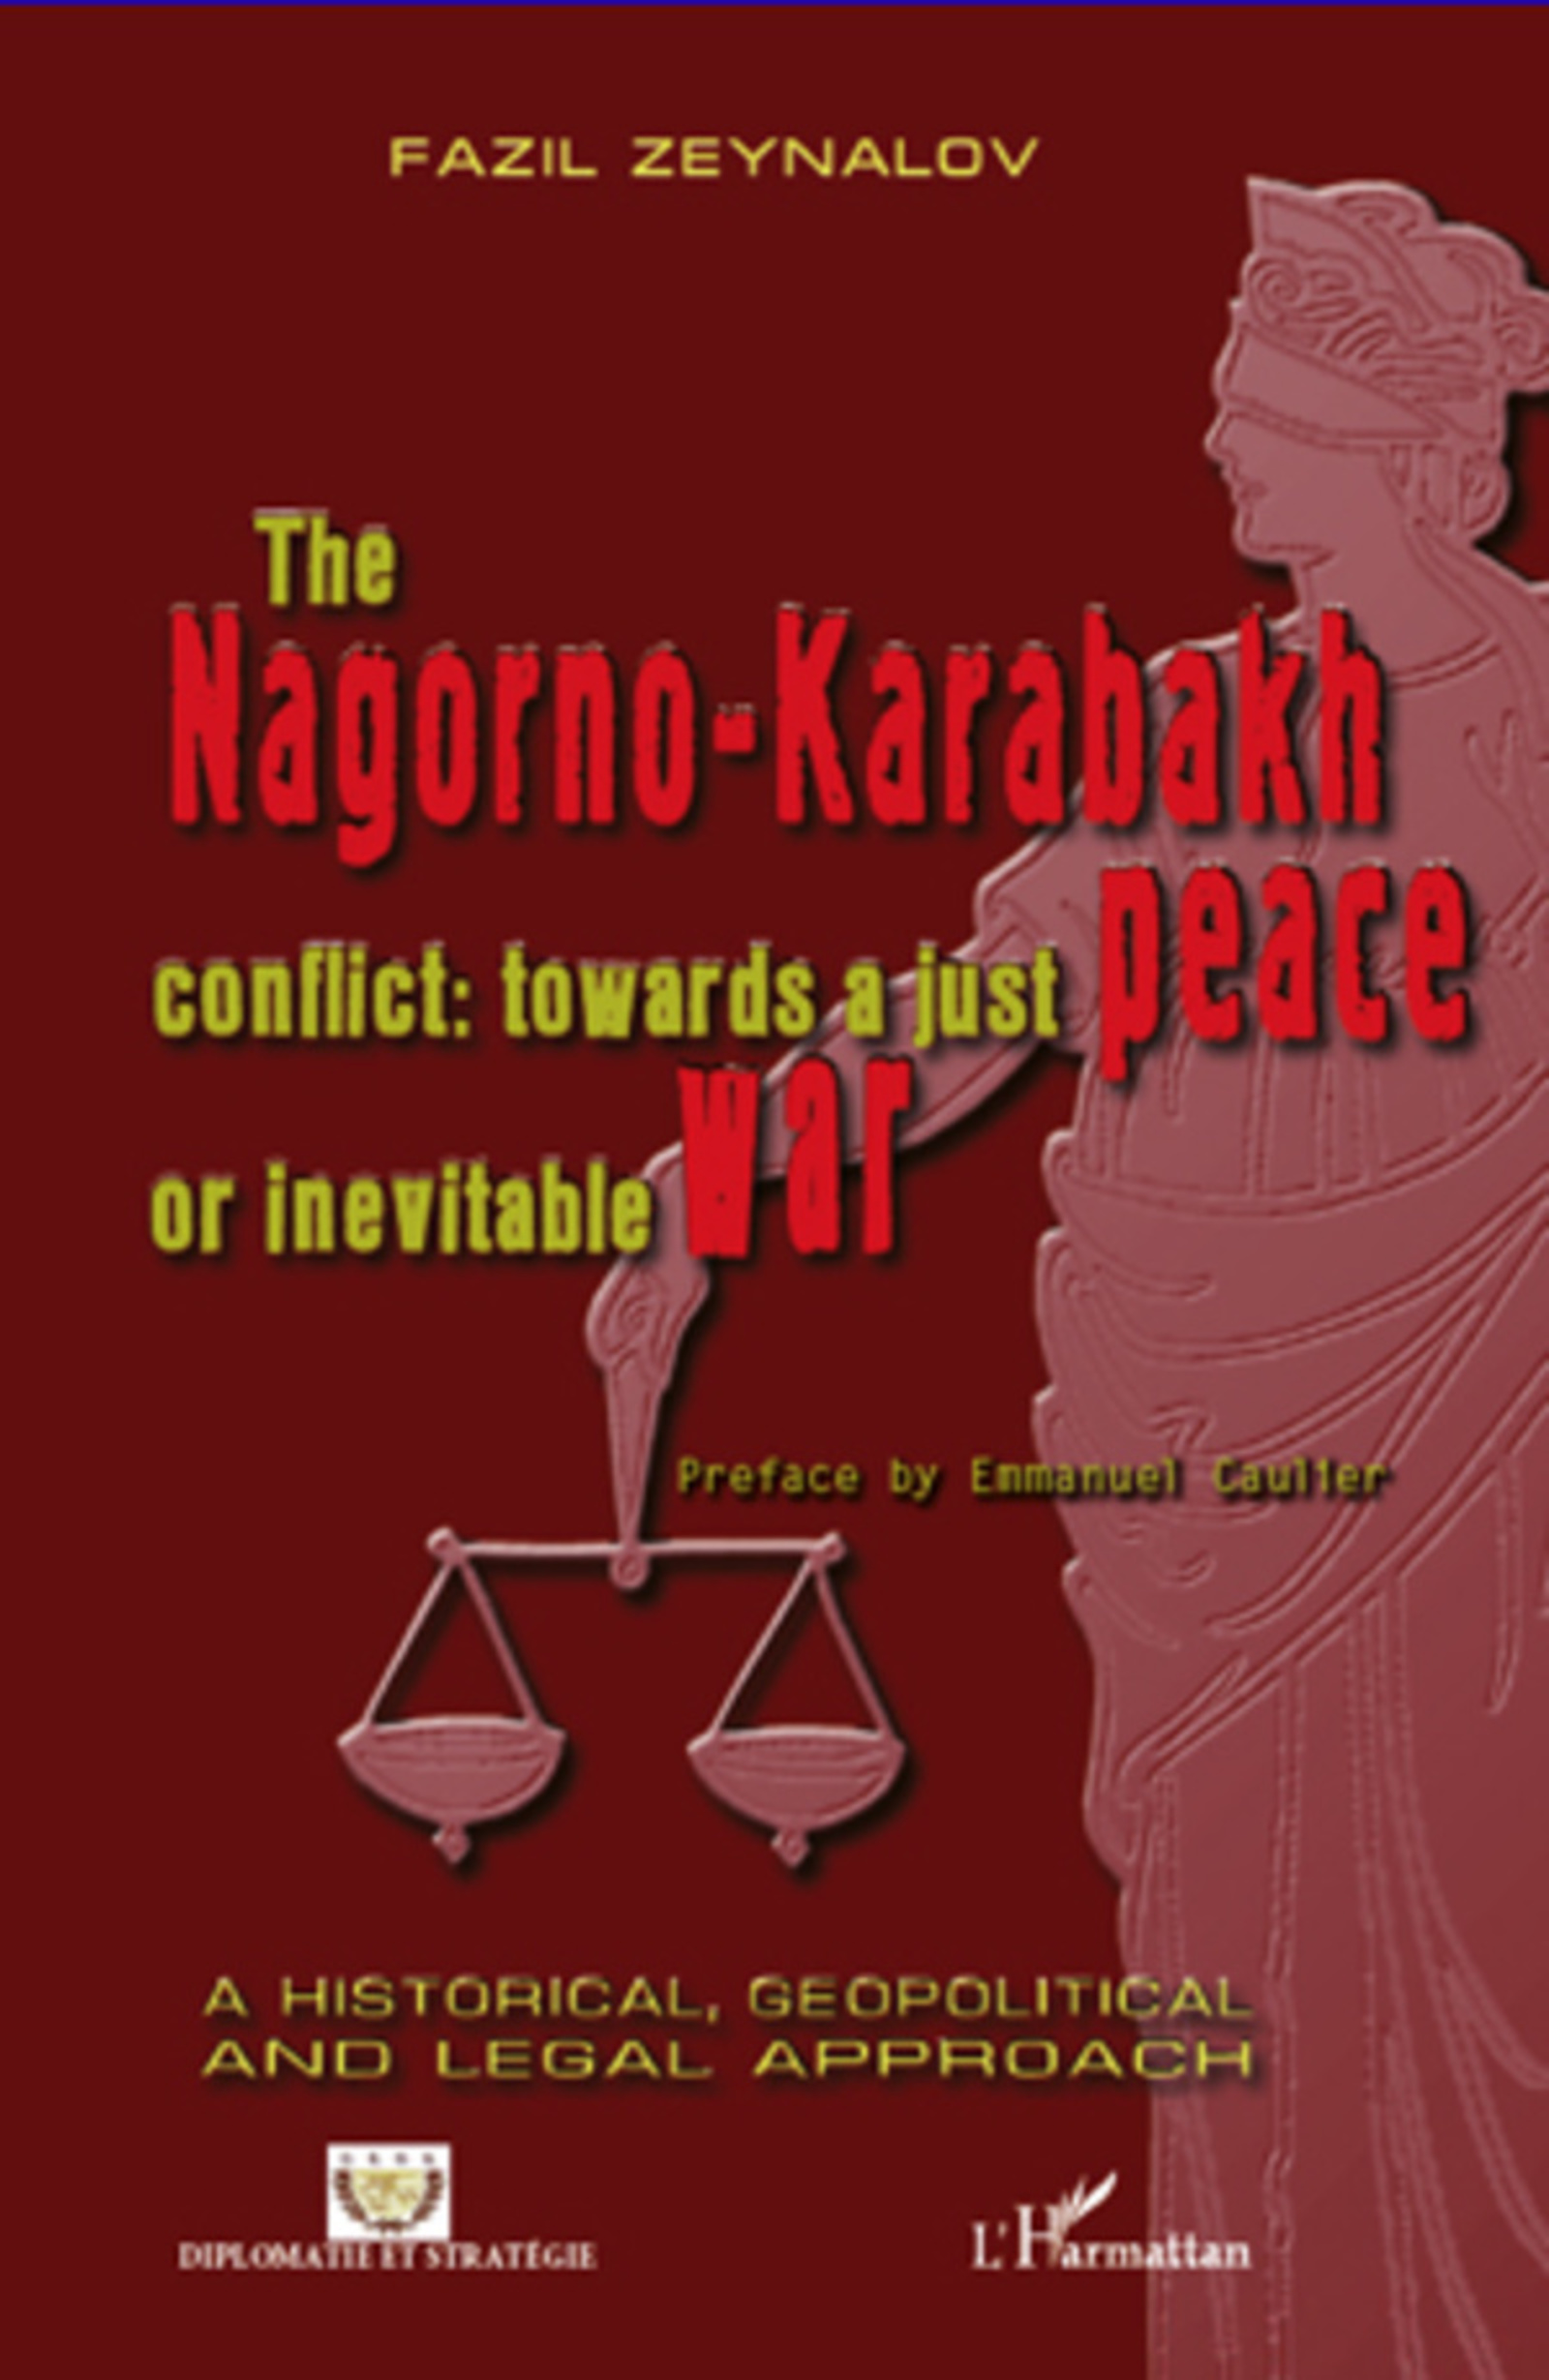 The Nagorno-Karabakh conflict : towards a just peace or inevitable war